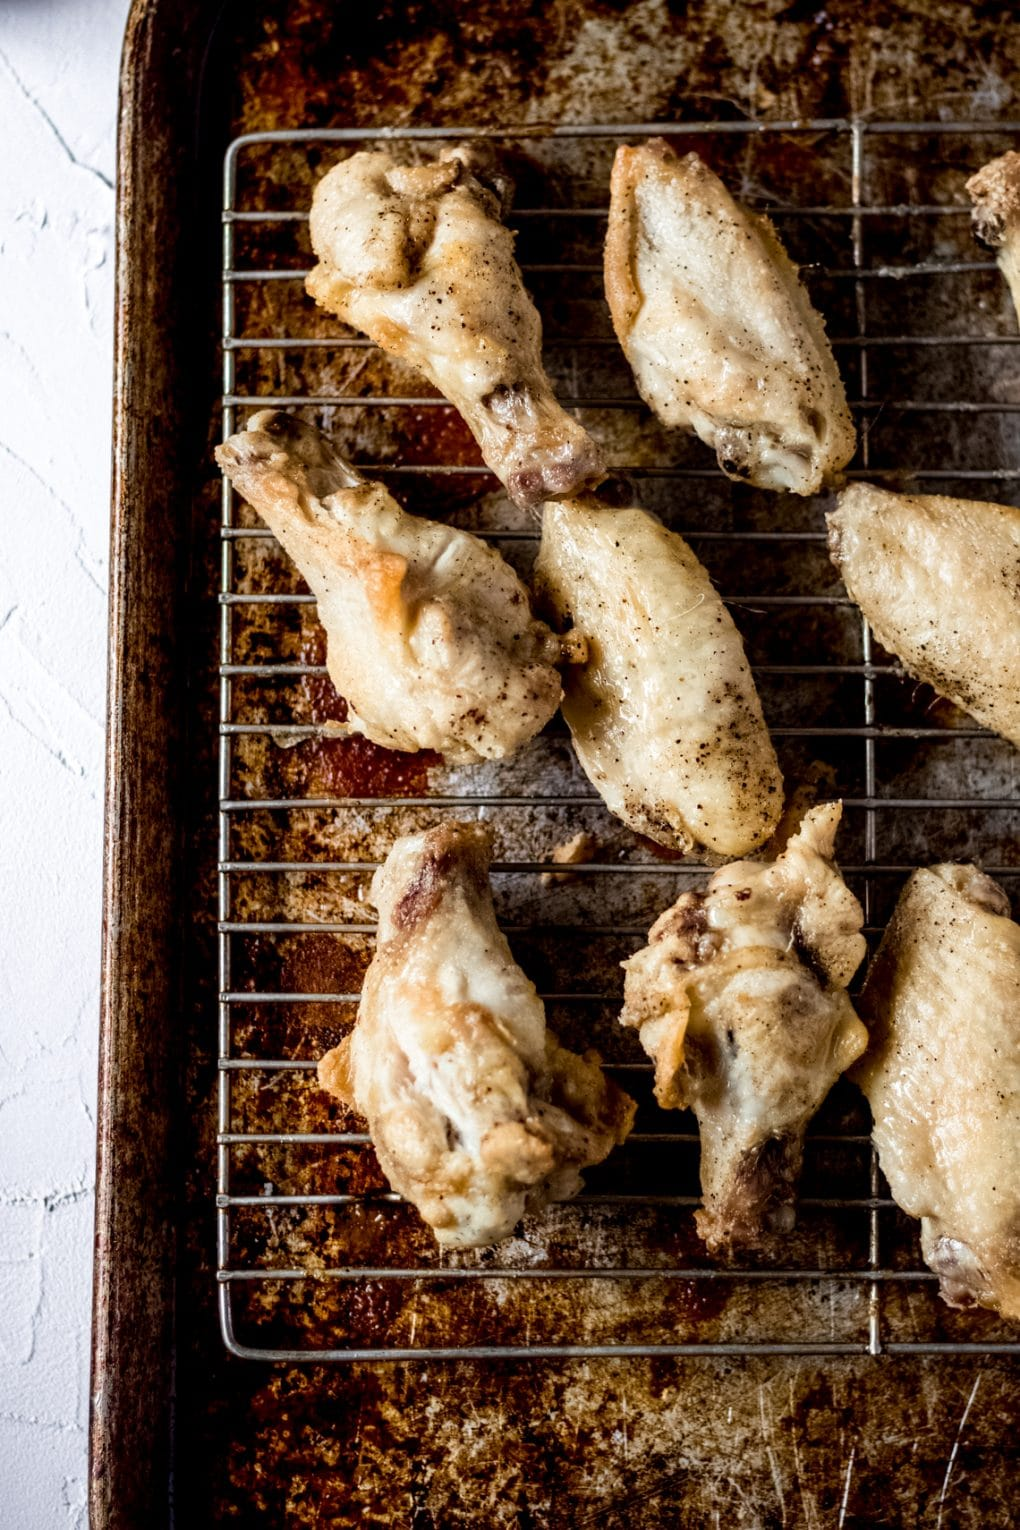 naked oven baked chicken wings